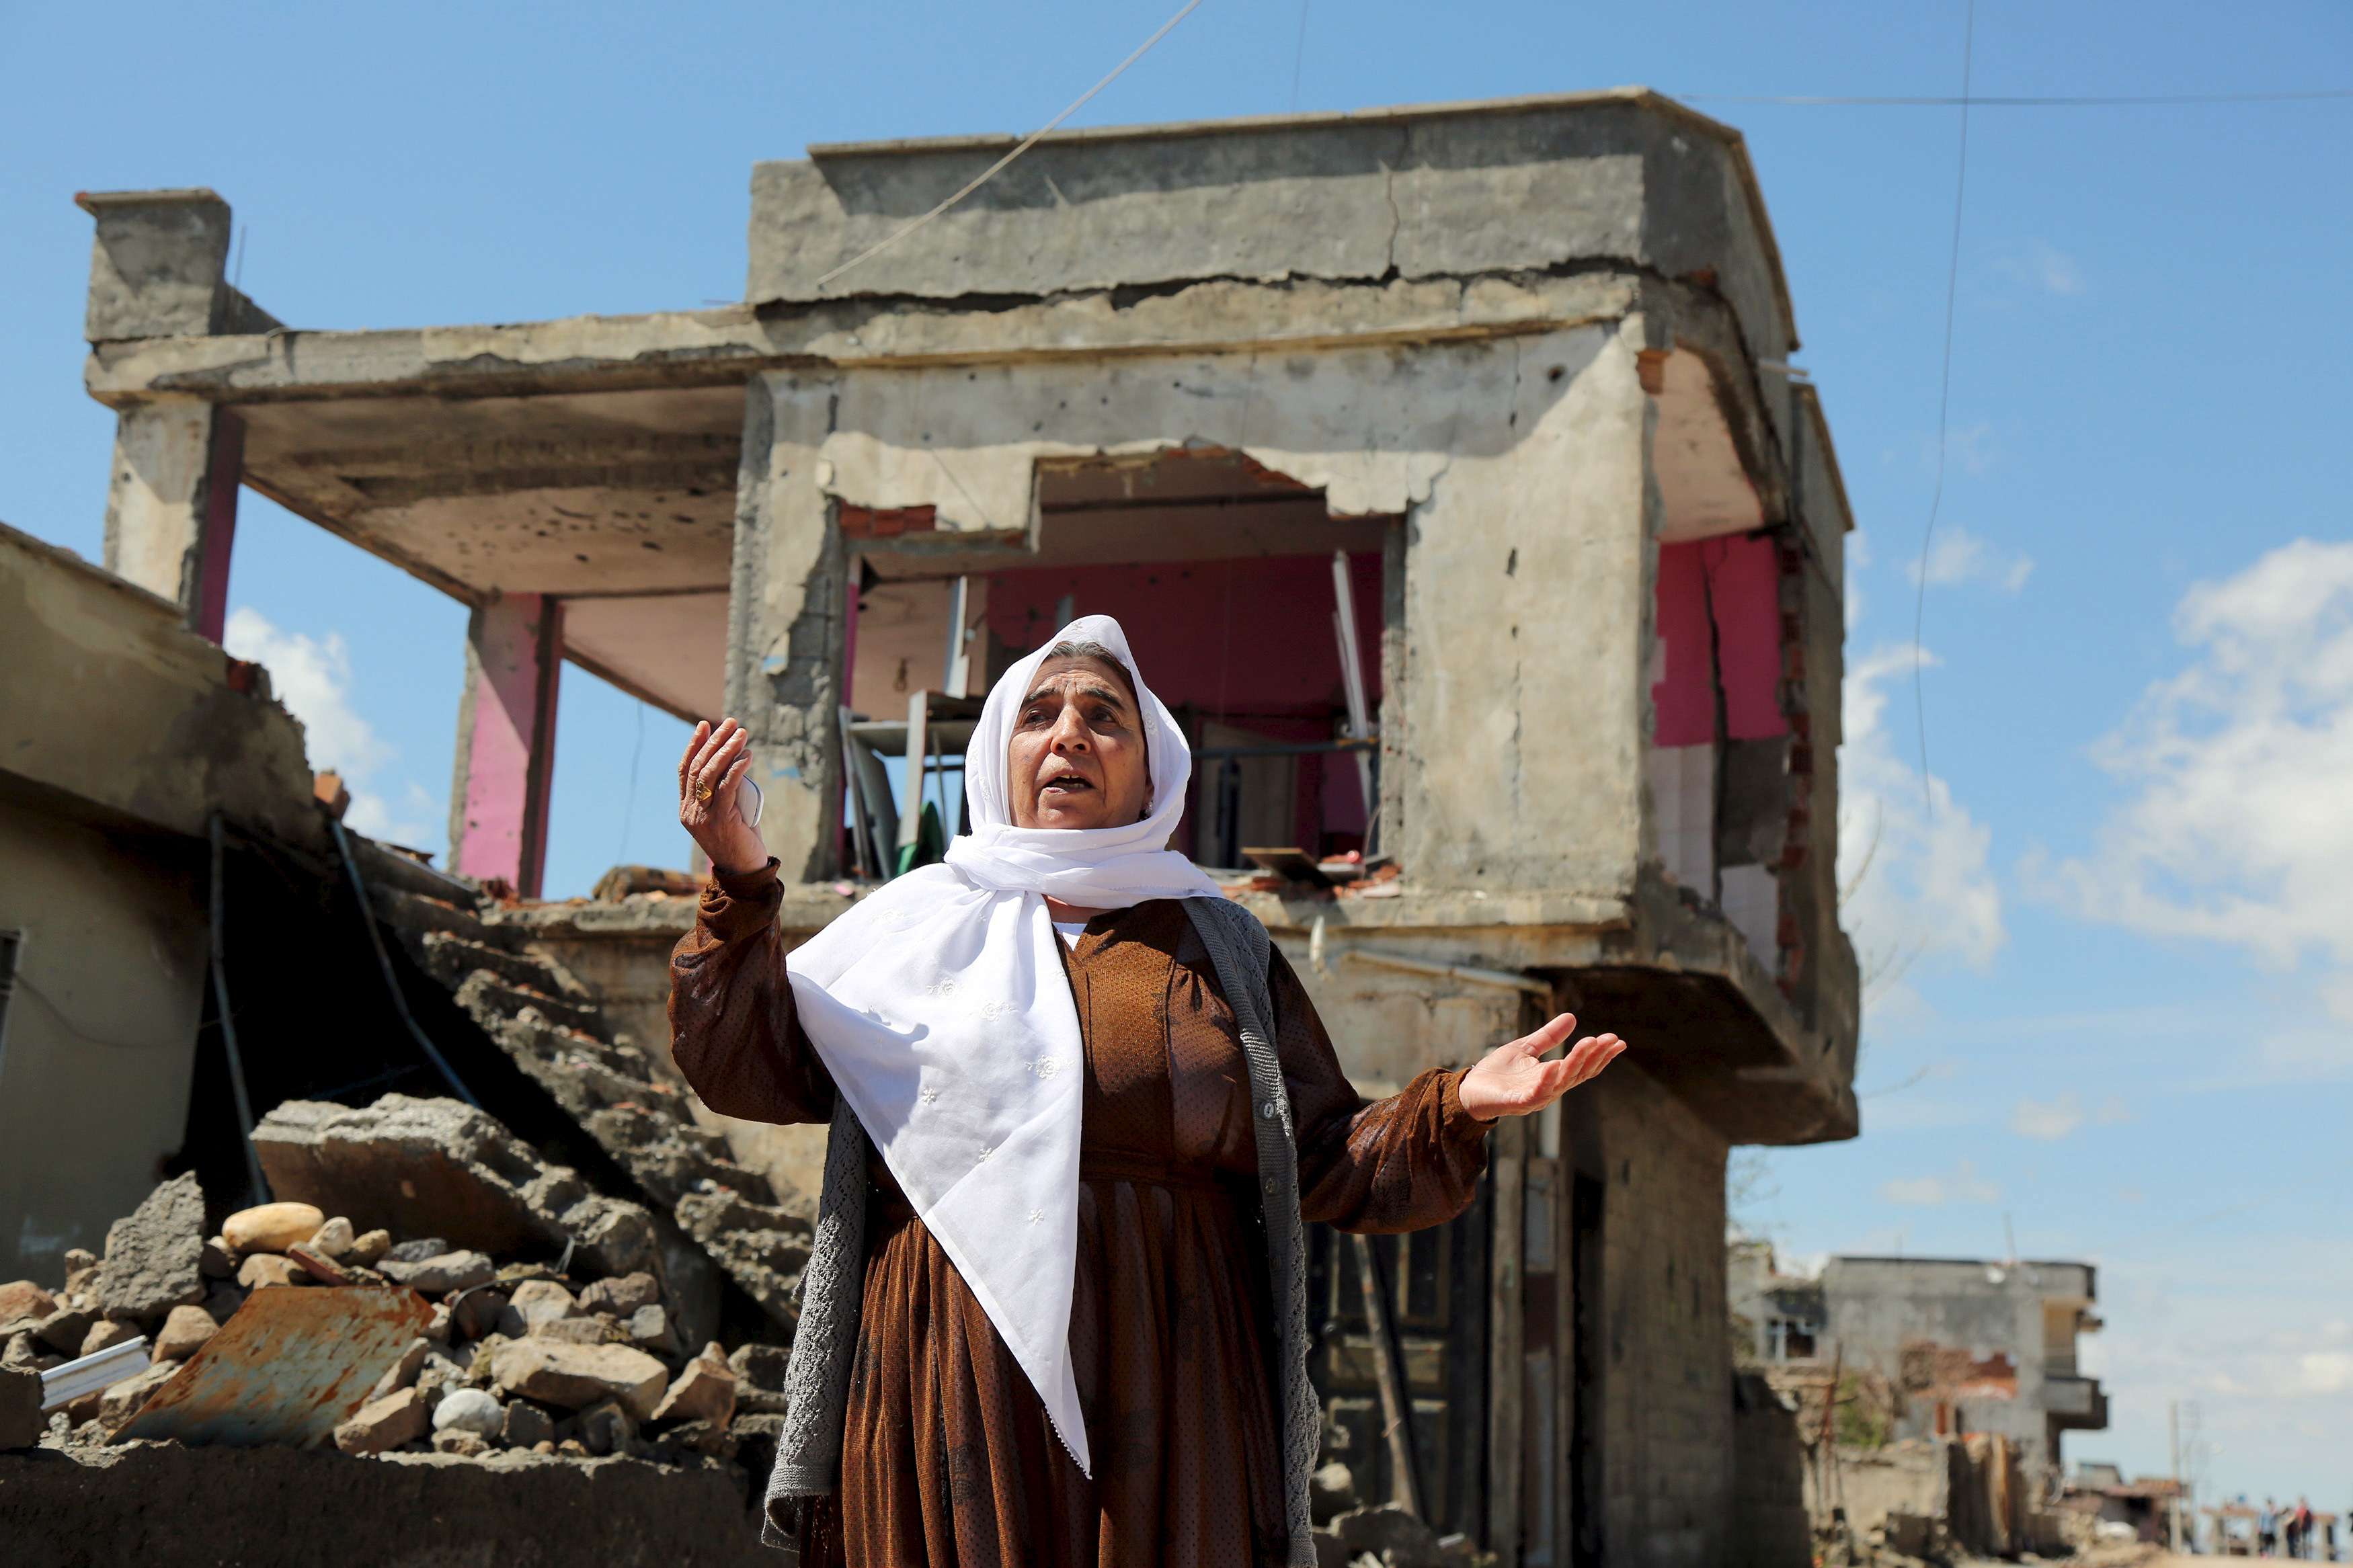 A woman reacts as she stands in front of her house, which was damaged during the security operations and clashes between Turkish security forces and Kurdish militants, in the southeastern town of Idil, Turkey, March 31, 2016. REUTERS/Sertac Kayar - RTSCZOS